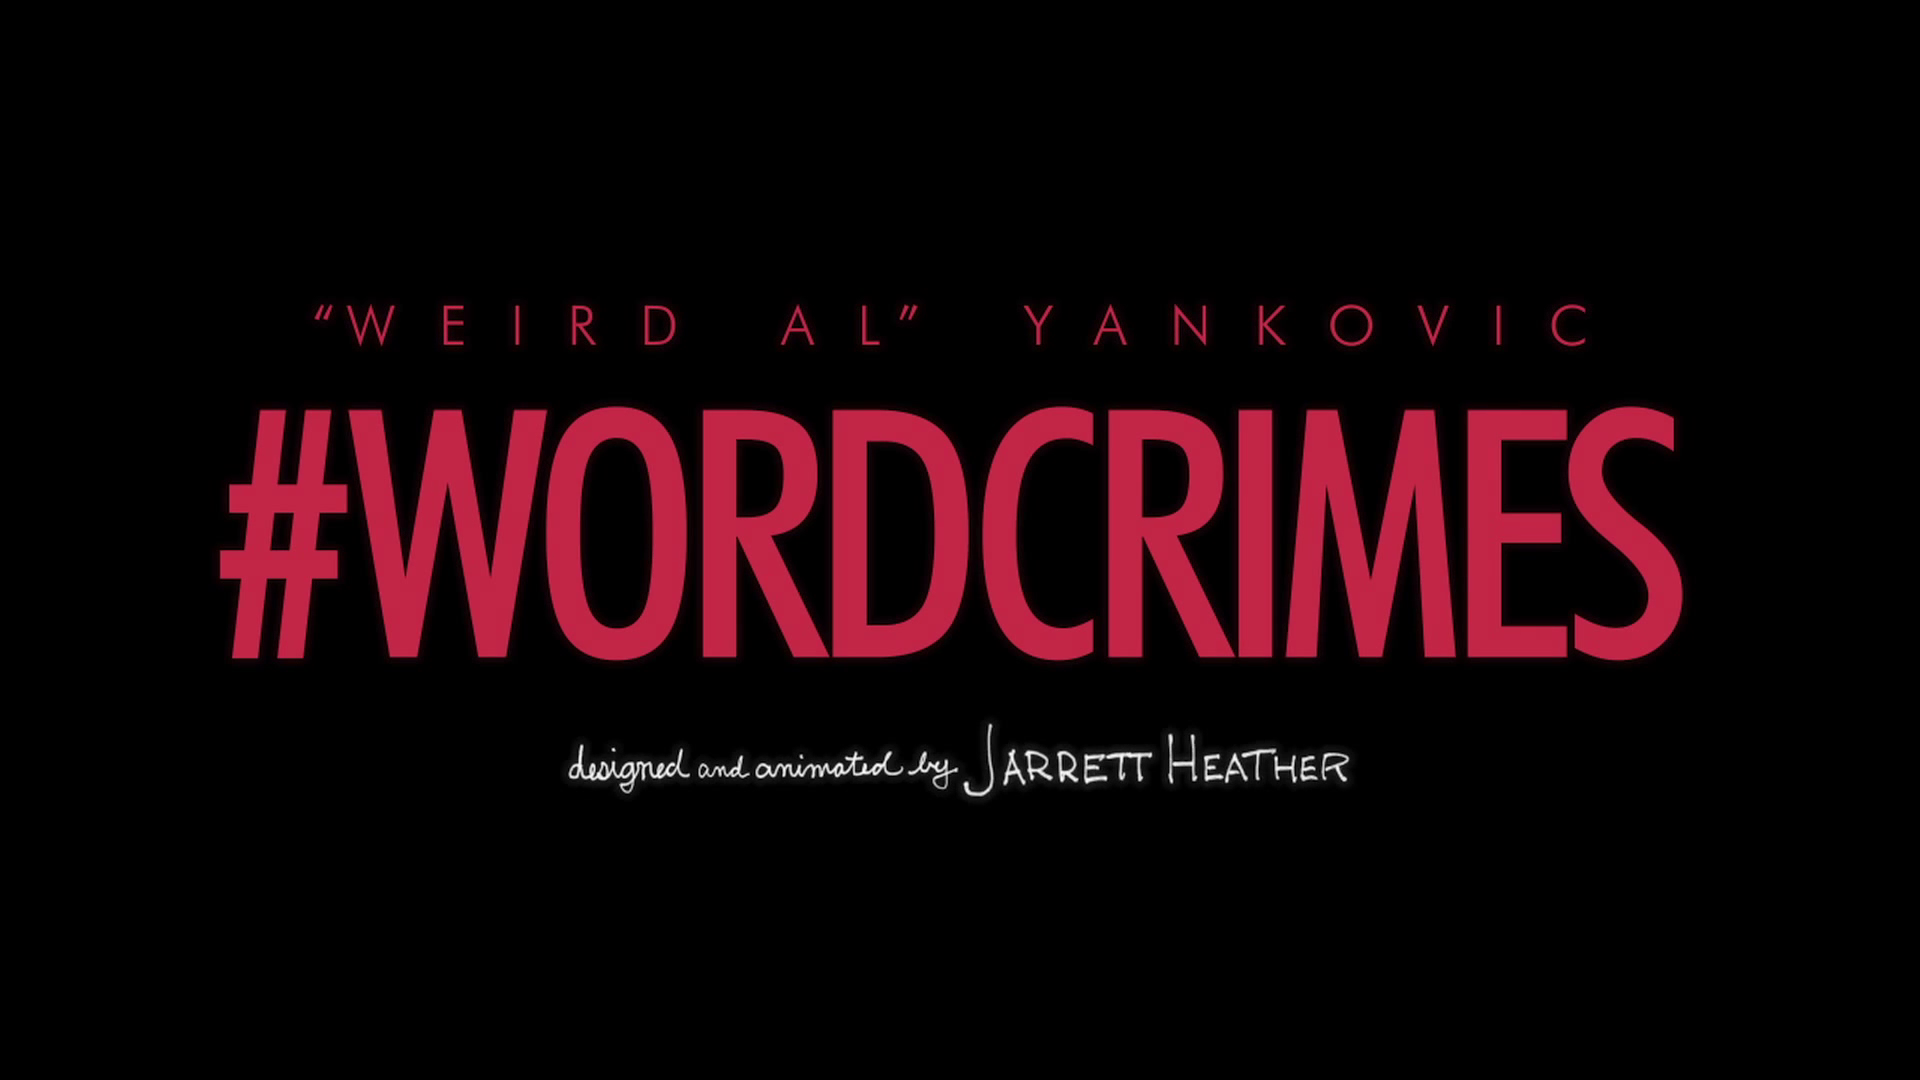 A quick critique of 'Word Crimes' by Weird Al Yankovic